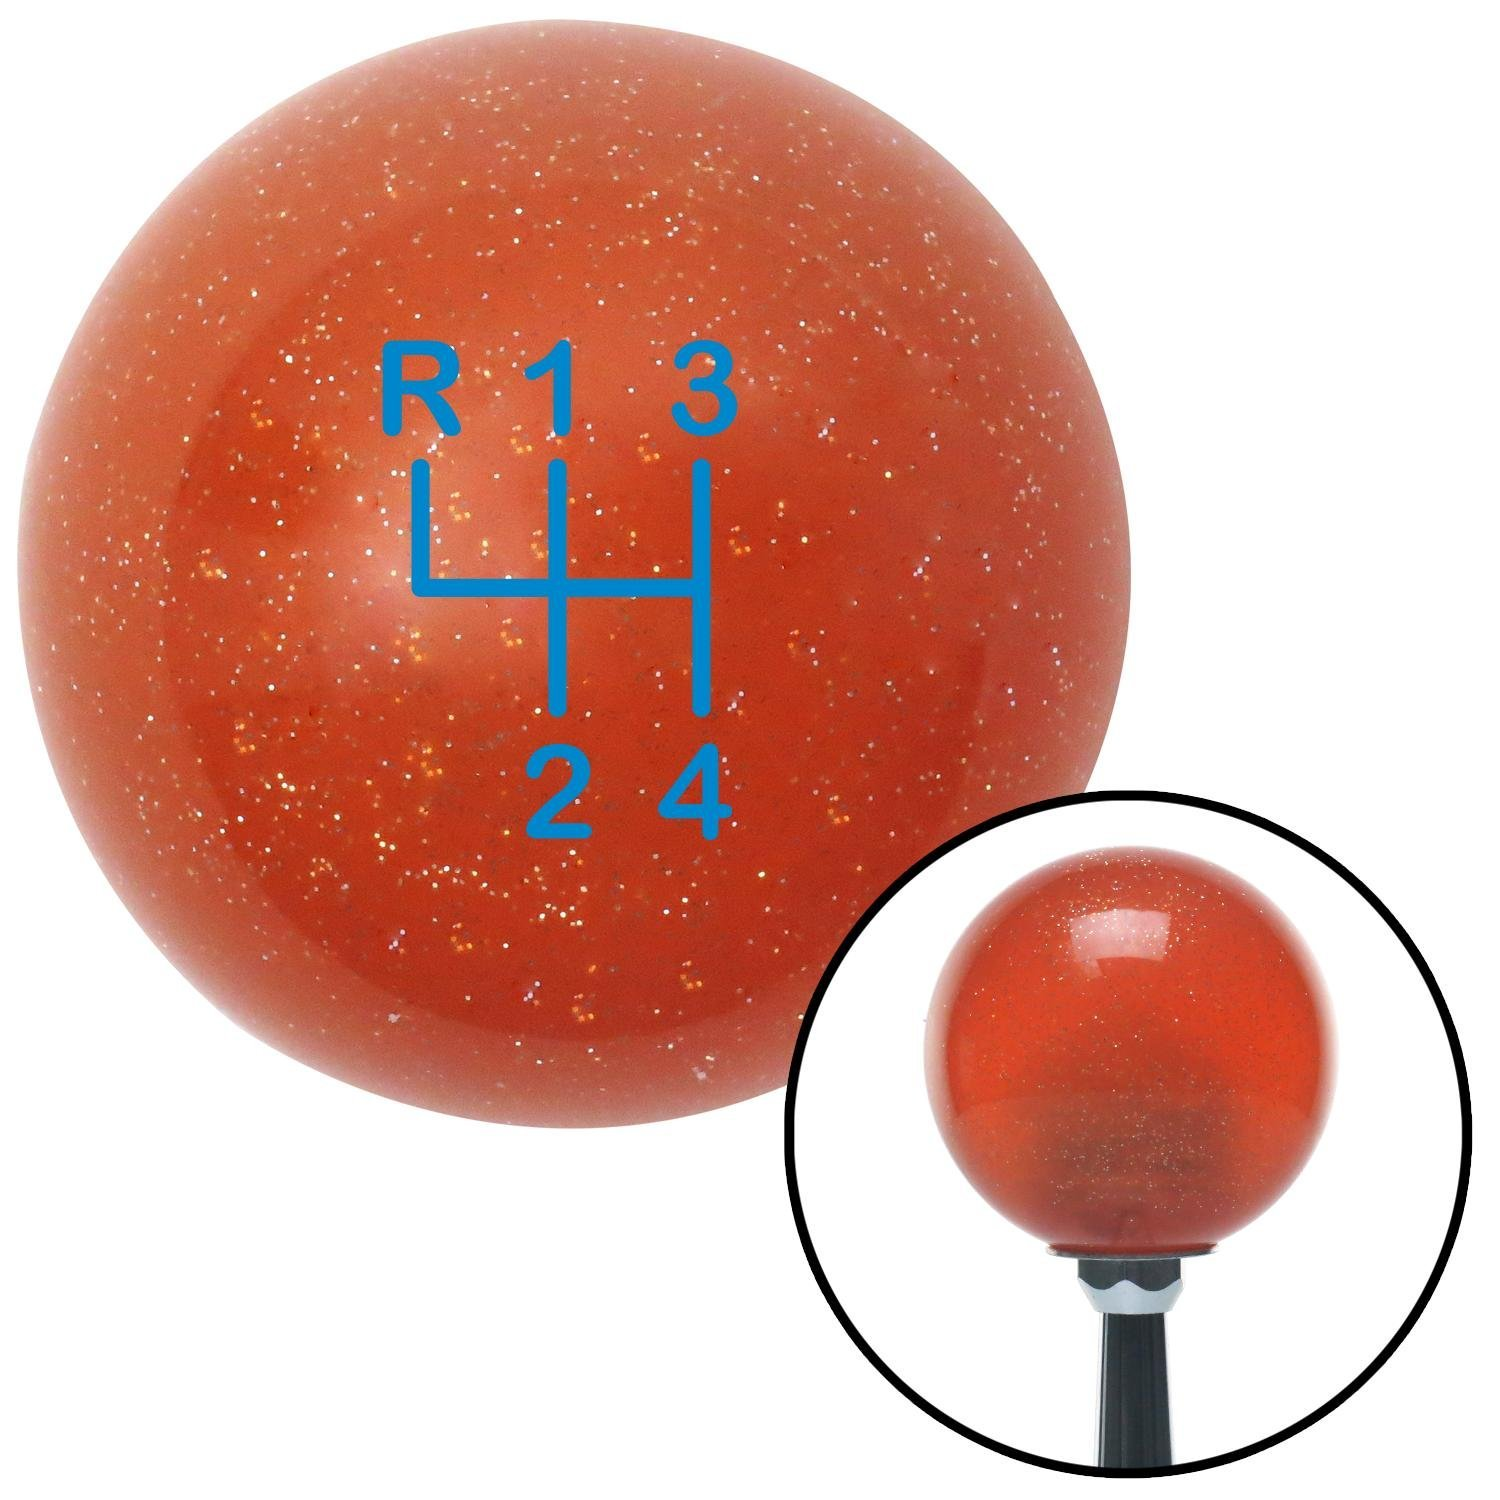 American Shifter 81516 Orange Metal Flake Shift Knob with M16 x 1.5 Insert Blue Shift Pattern 3n